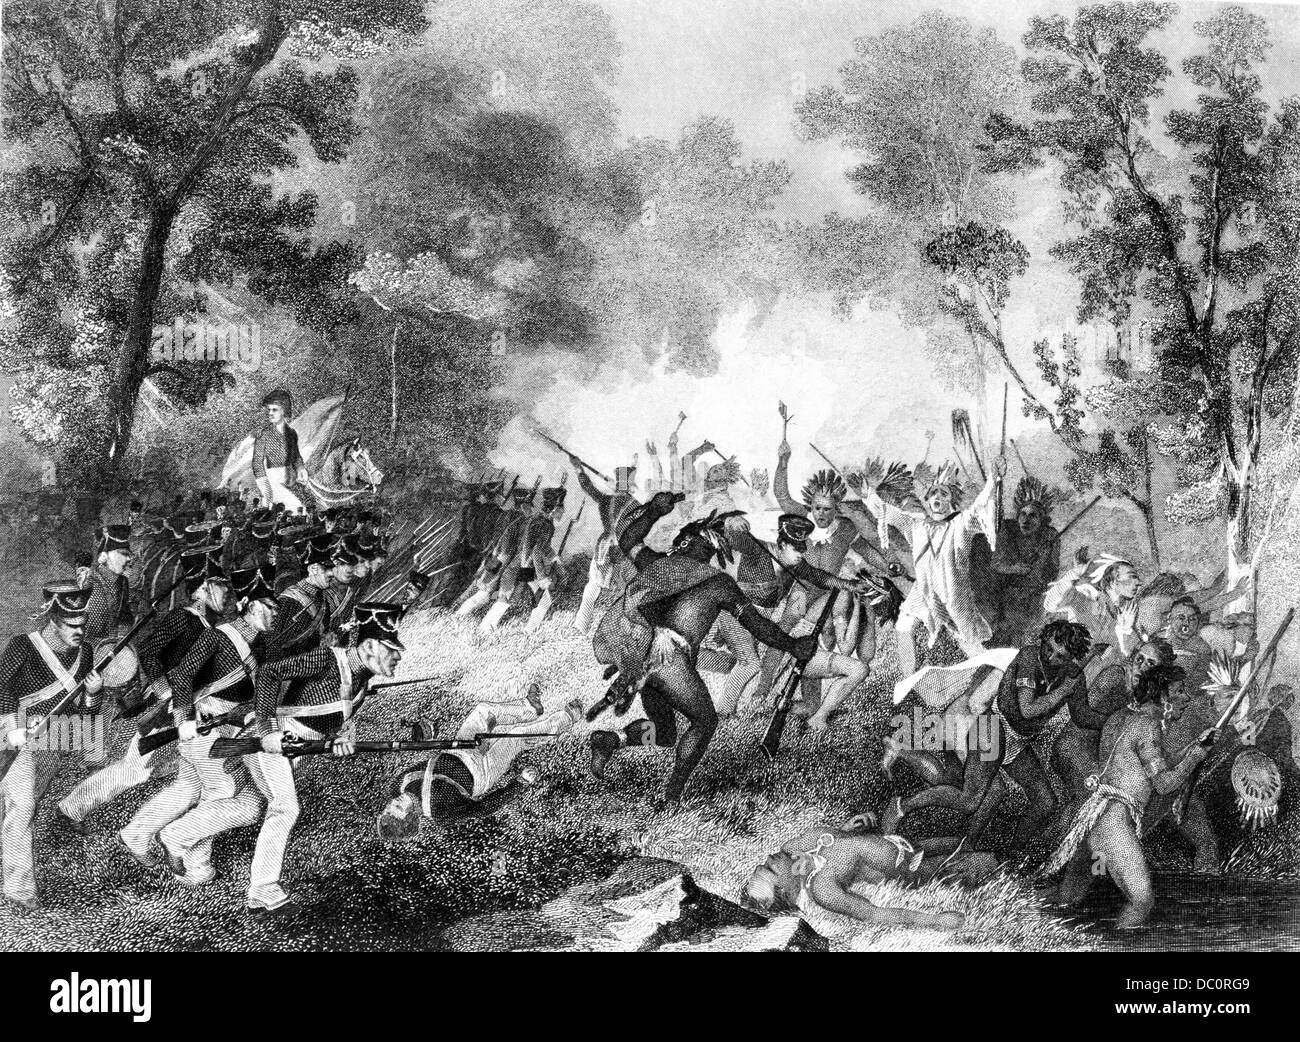 battle of tippecanoe and old tecumseh The battle of tippecanoe was fought between tecumseh's confederacyand the united states on november 7, 1811 james madison was thepresident when the battle.